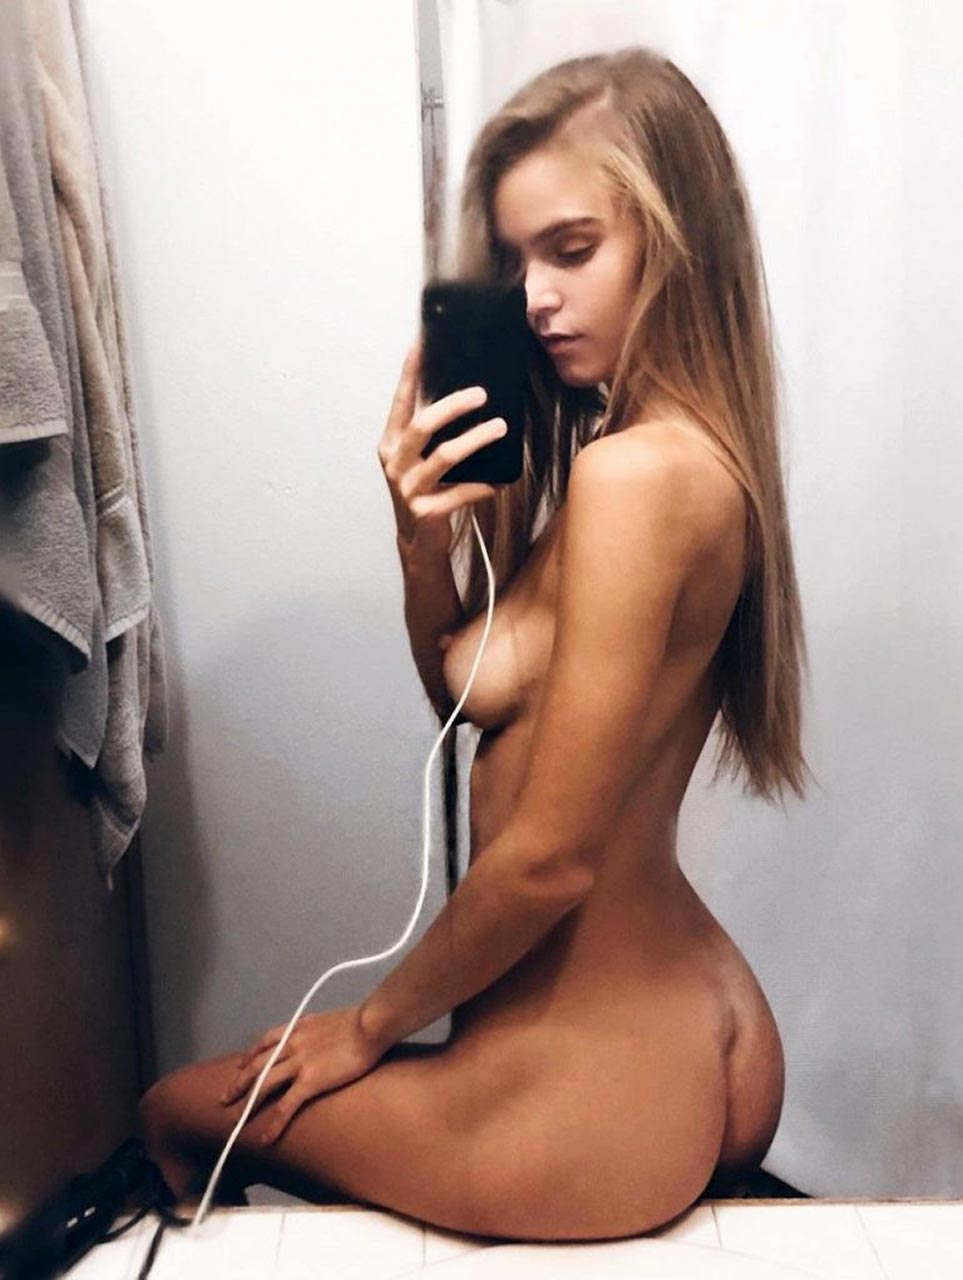 Amberleigh West Nude Videos Leaked and Naked Pics! 12